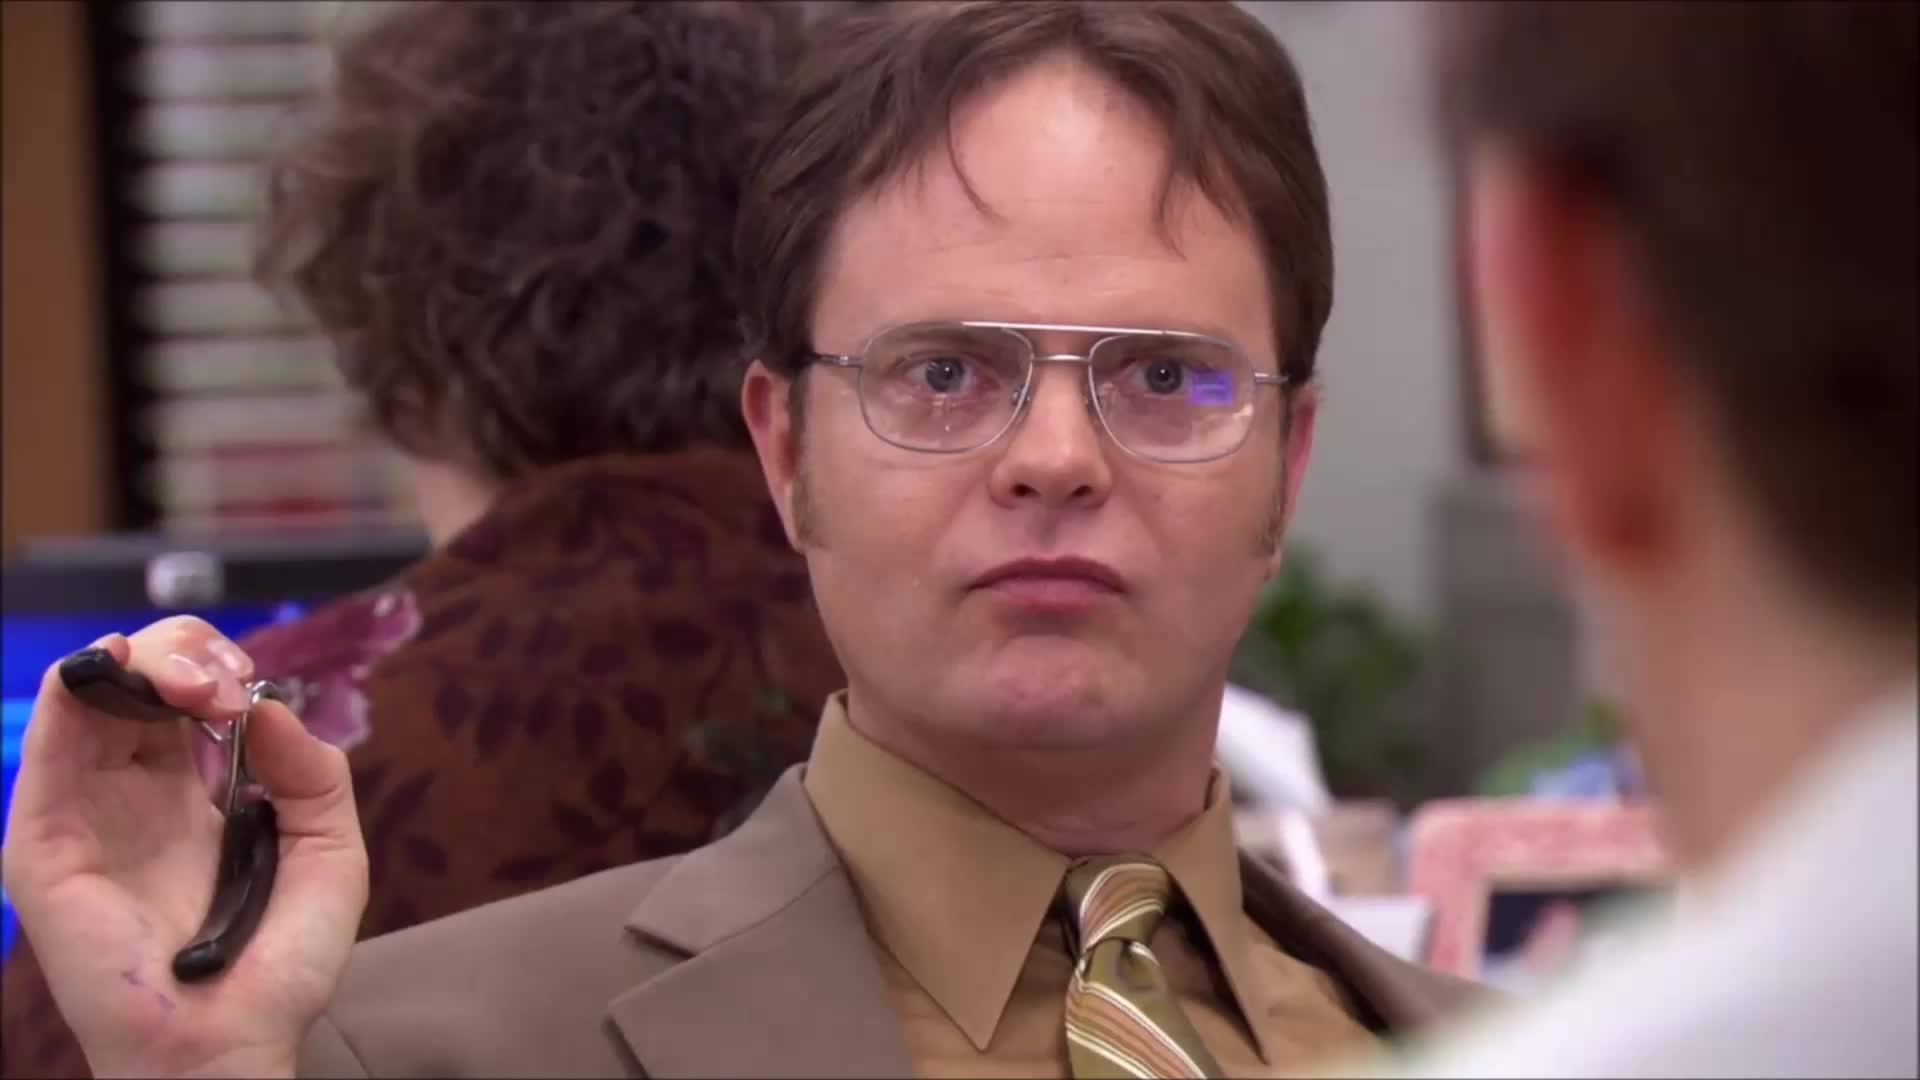 rainn wilson, Co owner GIFs